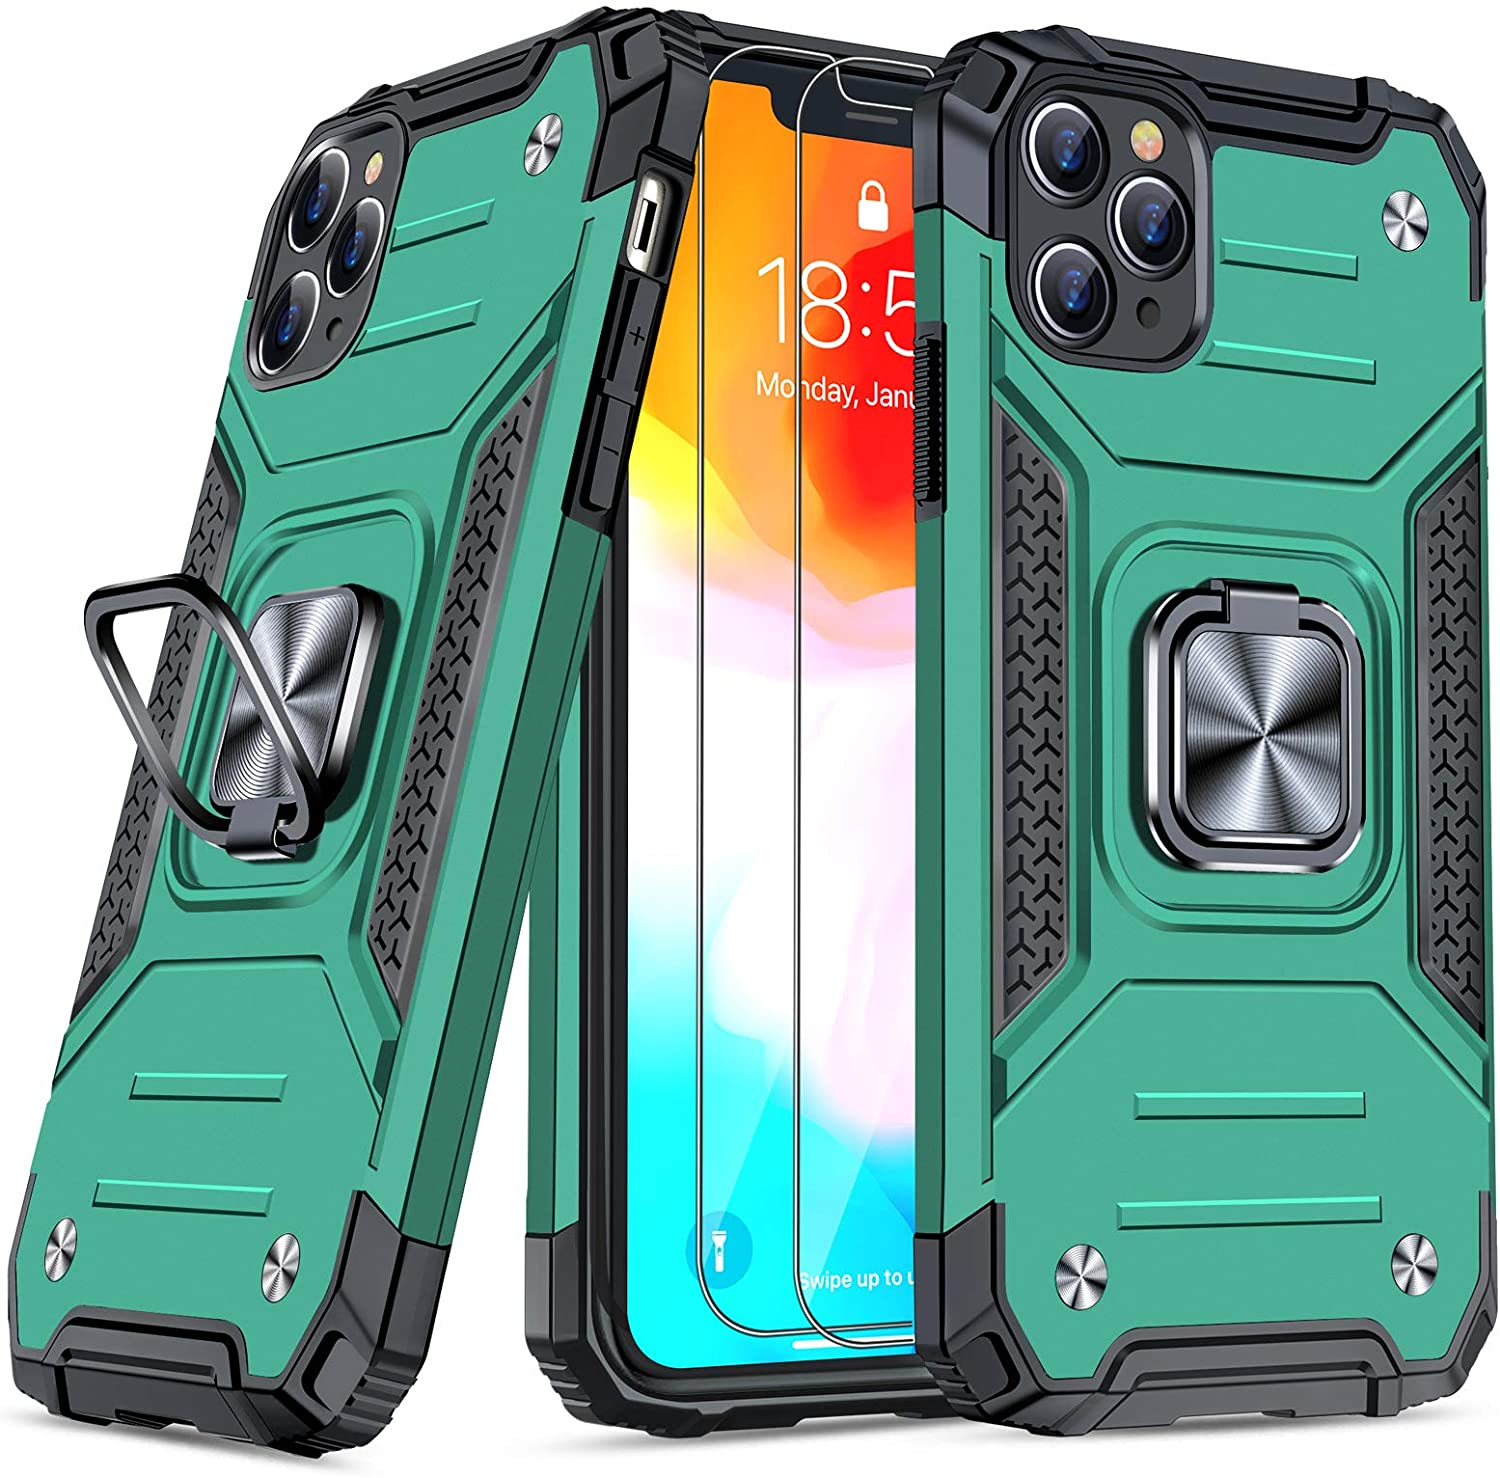 JAME Case for iPhone 11 Pro Max Case with Screen Protectors 2Pcs, Military-Grade Drop Protection, Shockproof Protective Phone Cases Cover Car Mount Ring Kickstand Case for iPhone 11 Pro Max Green